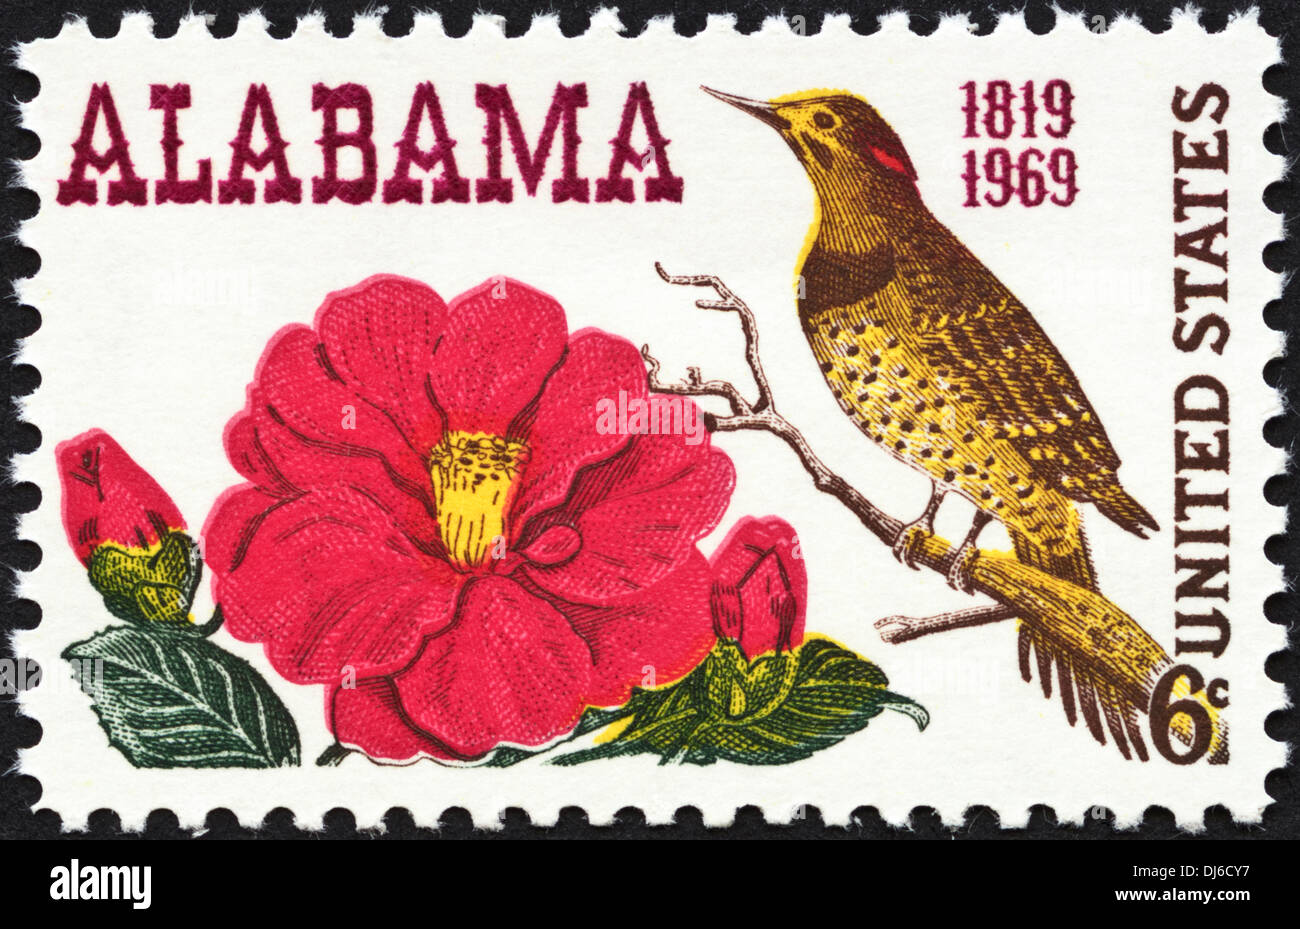 postage stamp United States 6c featuring Alabama 1819 - 1969 dated 1969 - Stock Image